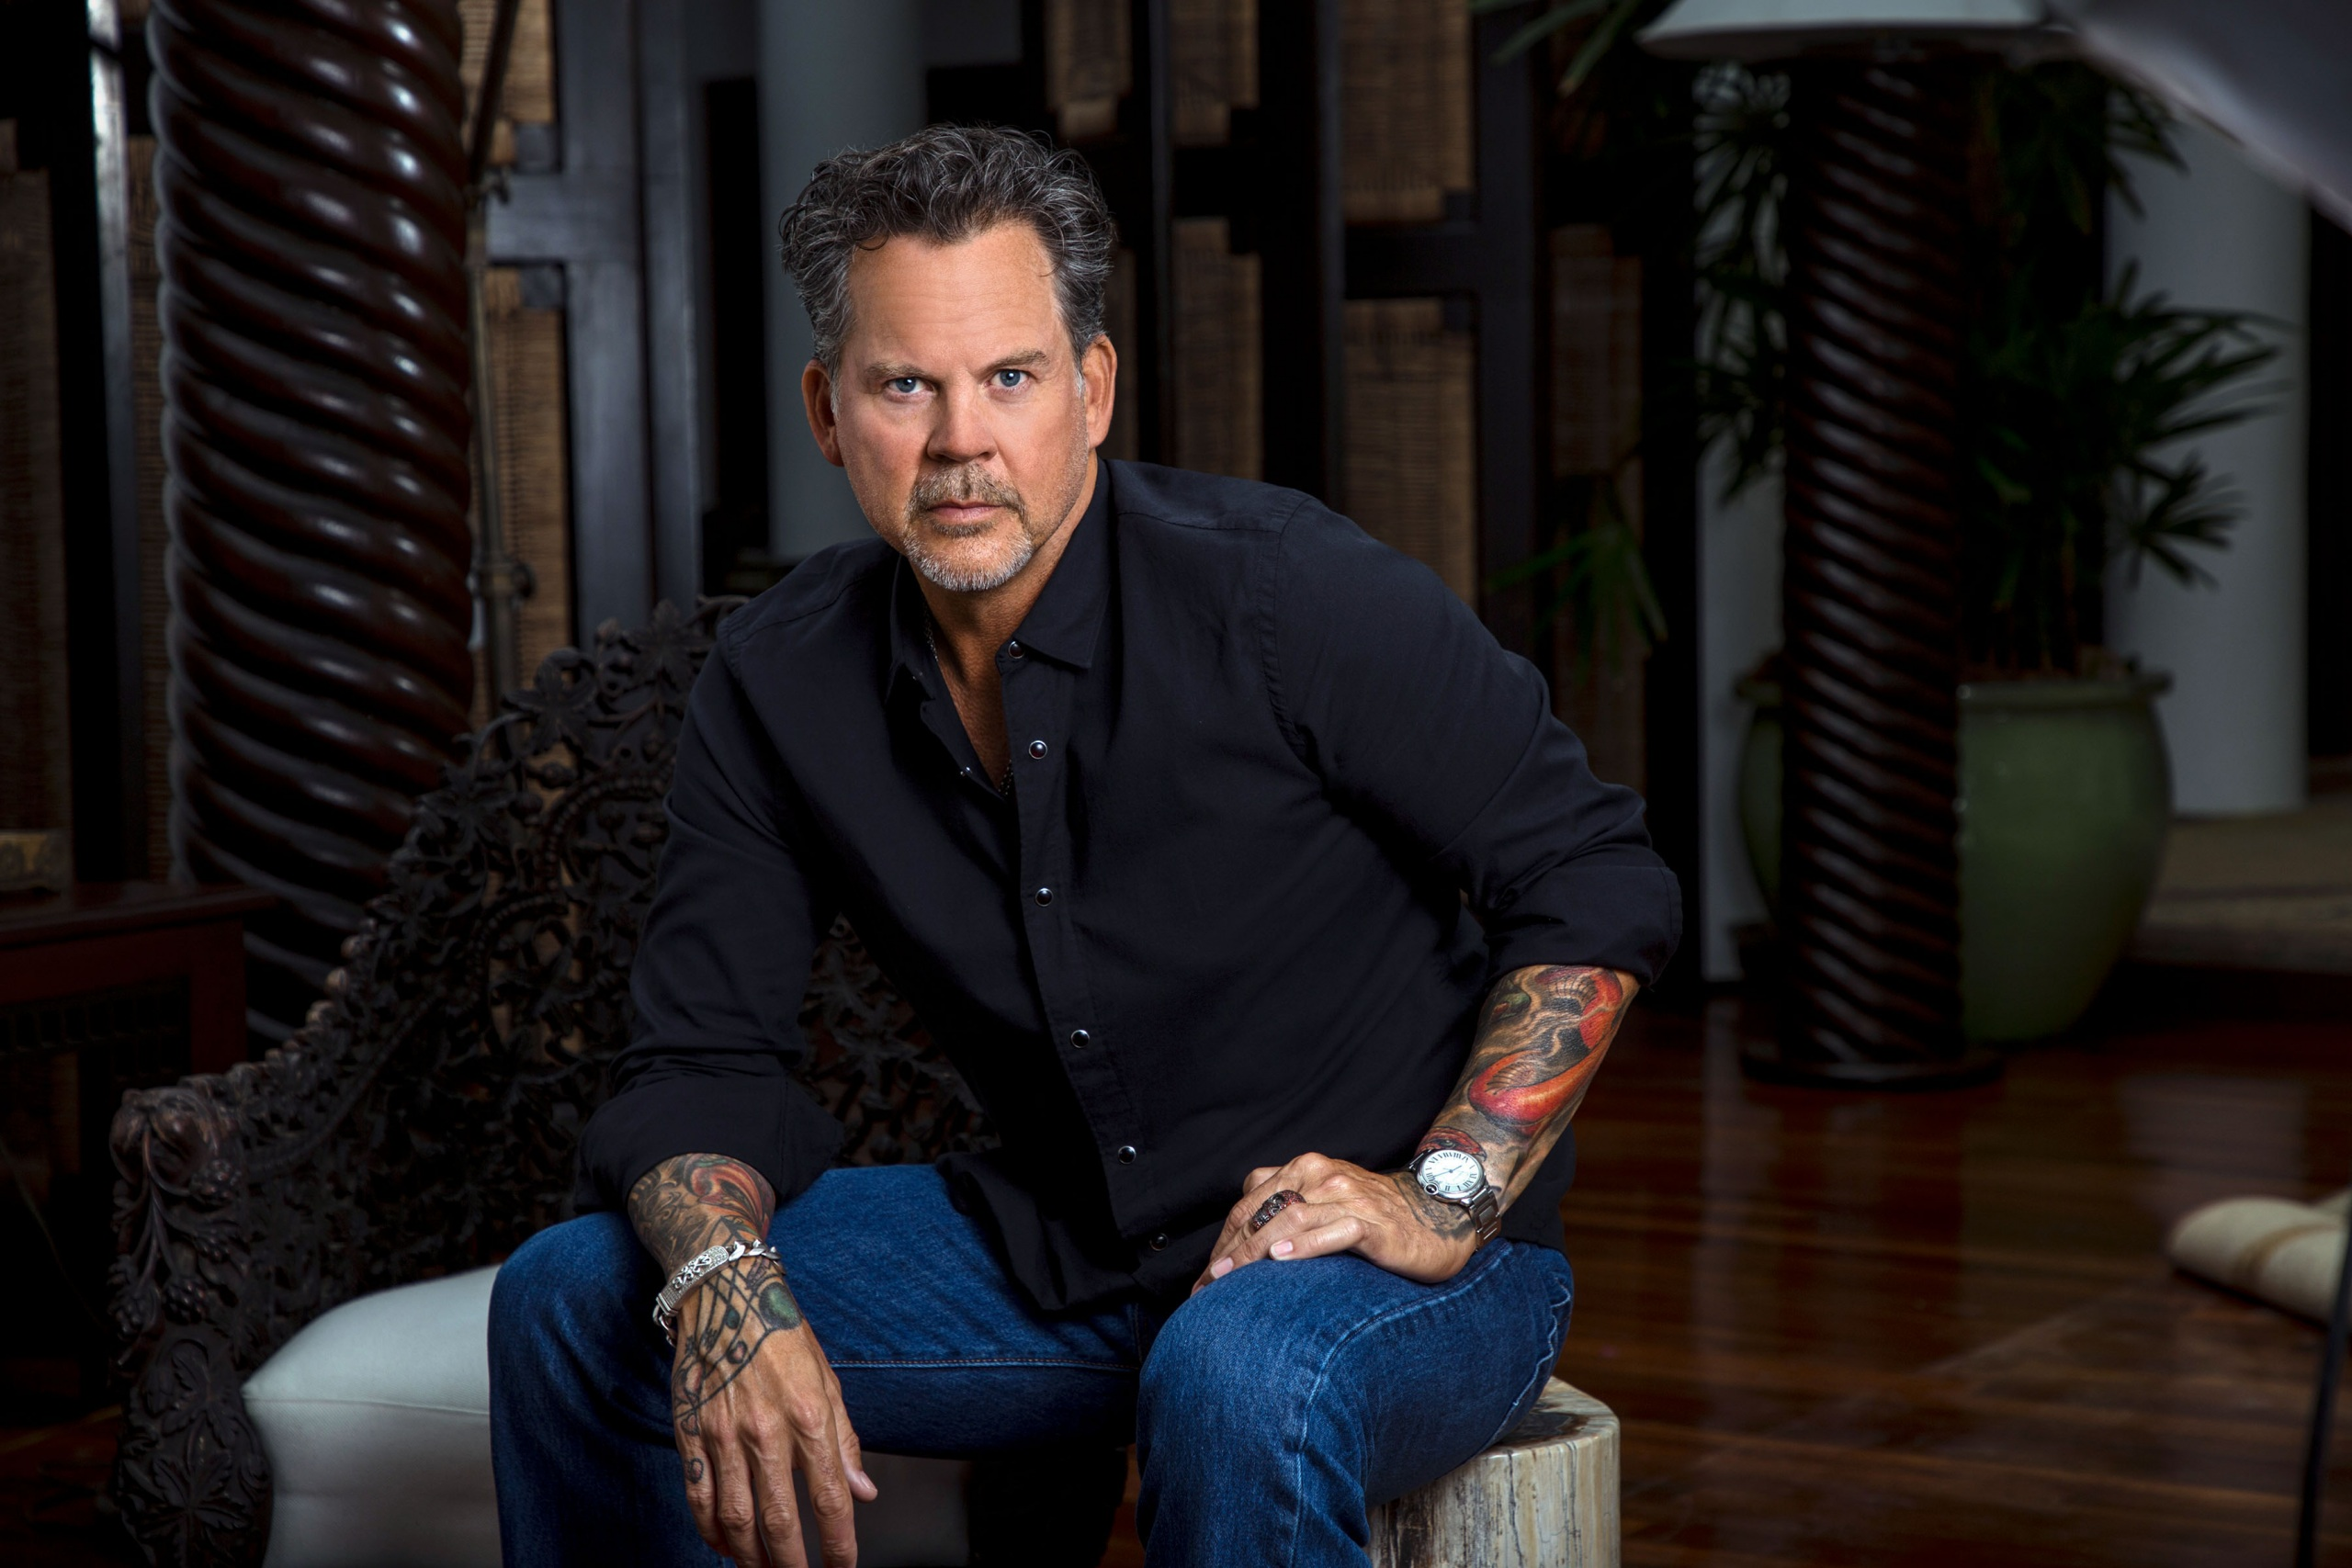 GARY ALLAN ANNOUNCES NEW ALBUM RUTHLESS – AVAILABLE JUNE 25th.